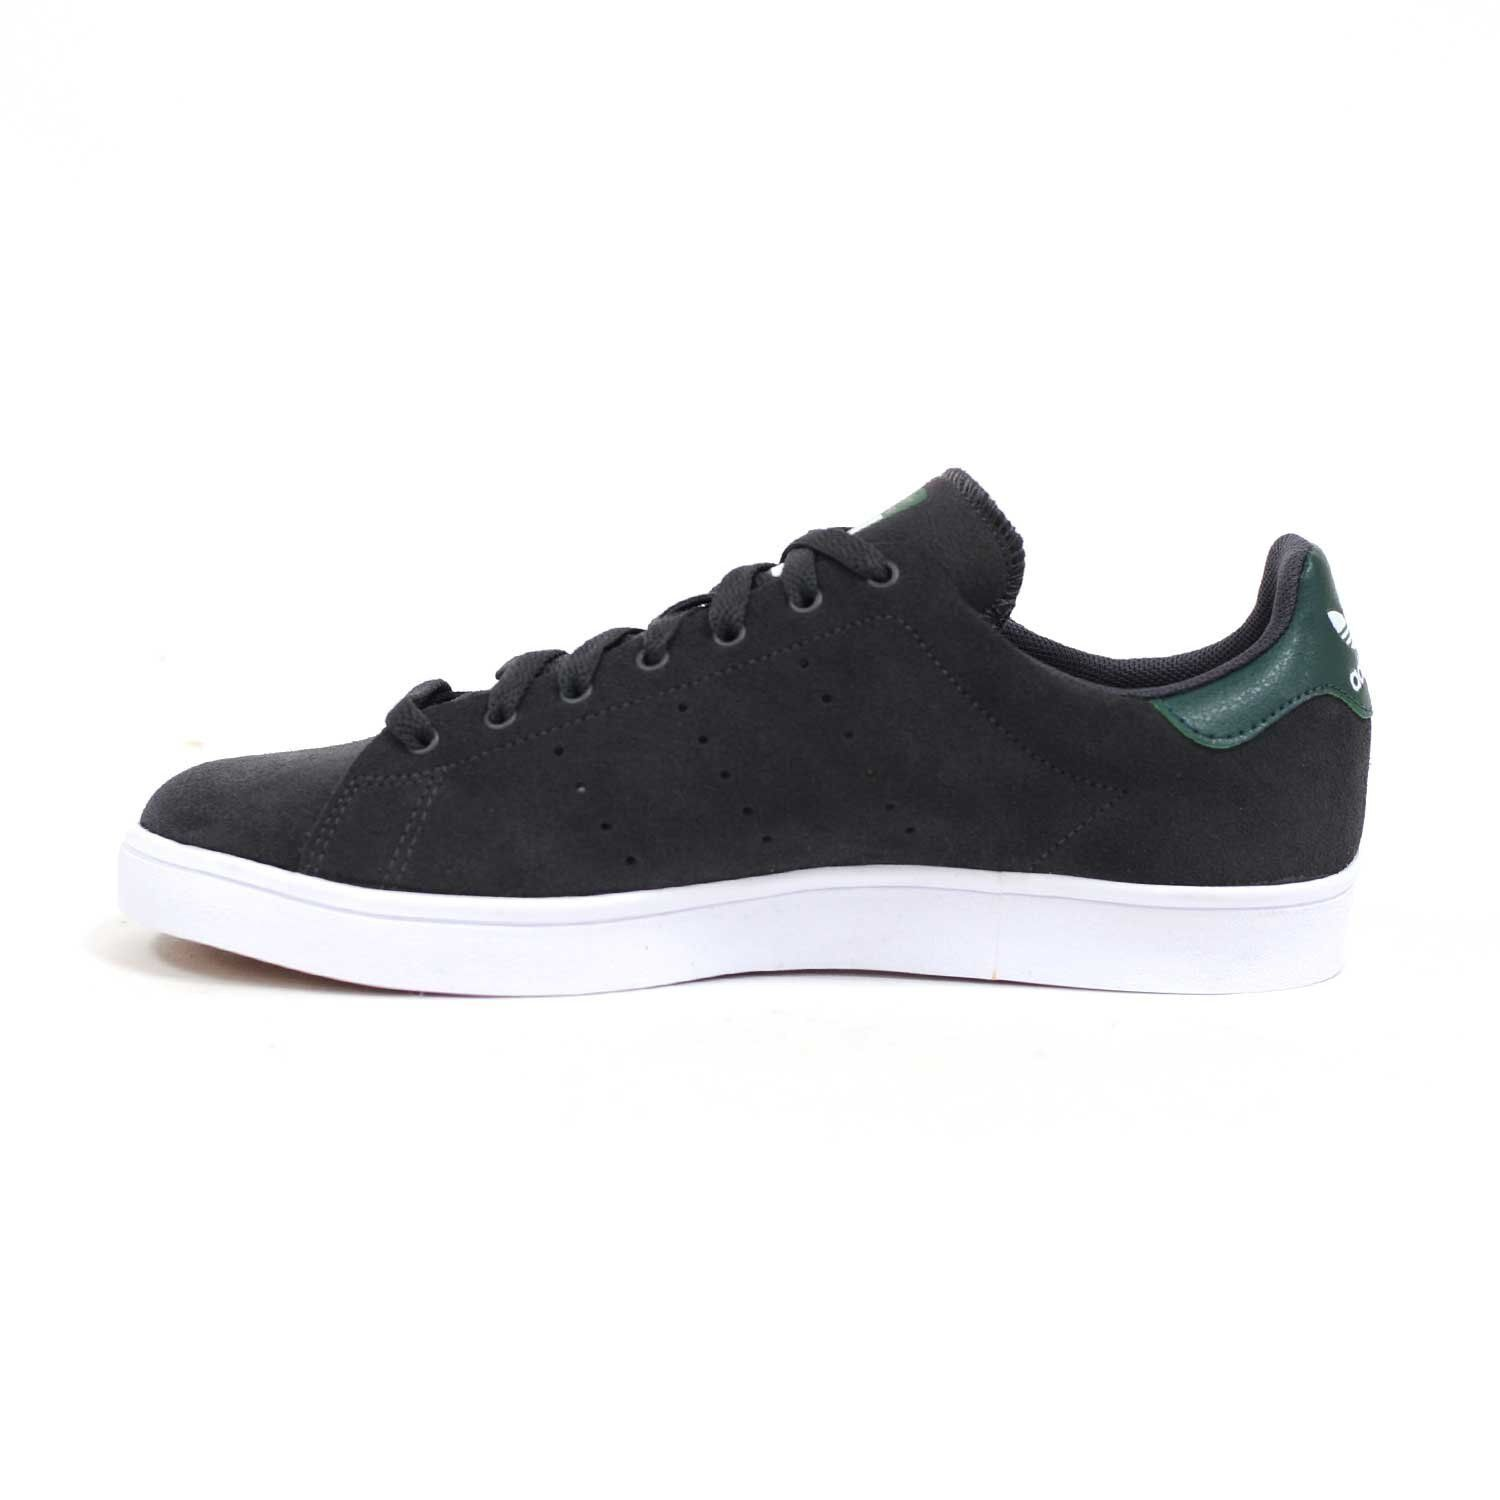 Adidas STAN SMITH VULC Dark Grey Forest Night White C75191 (314) Men's shoes